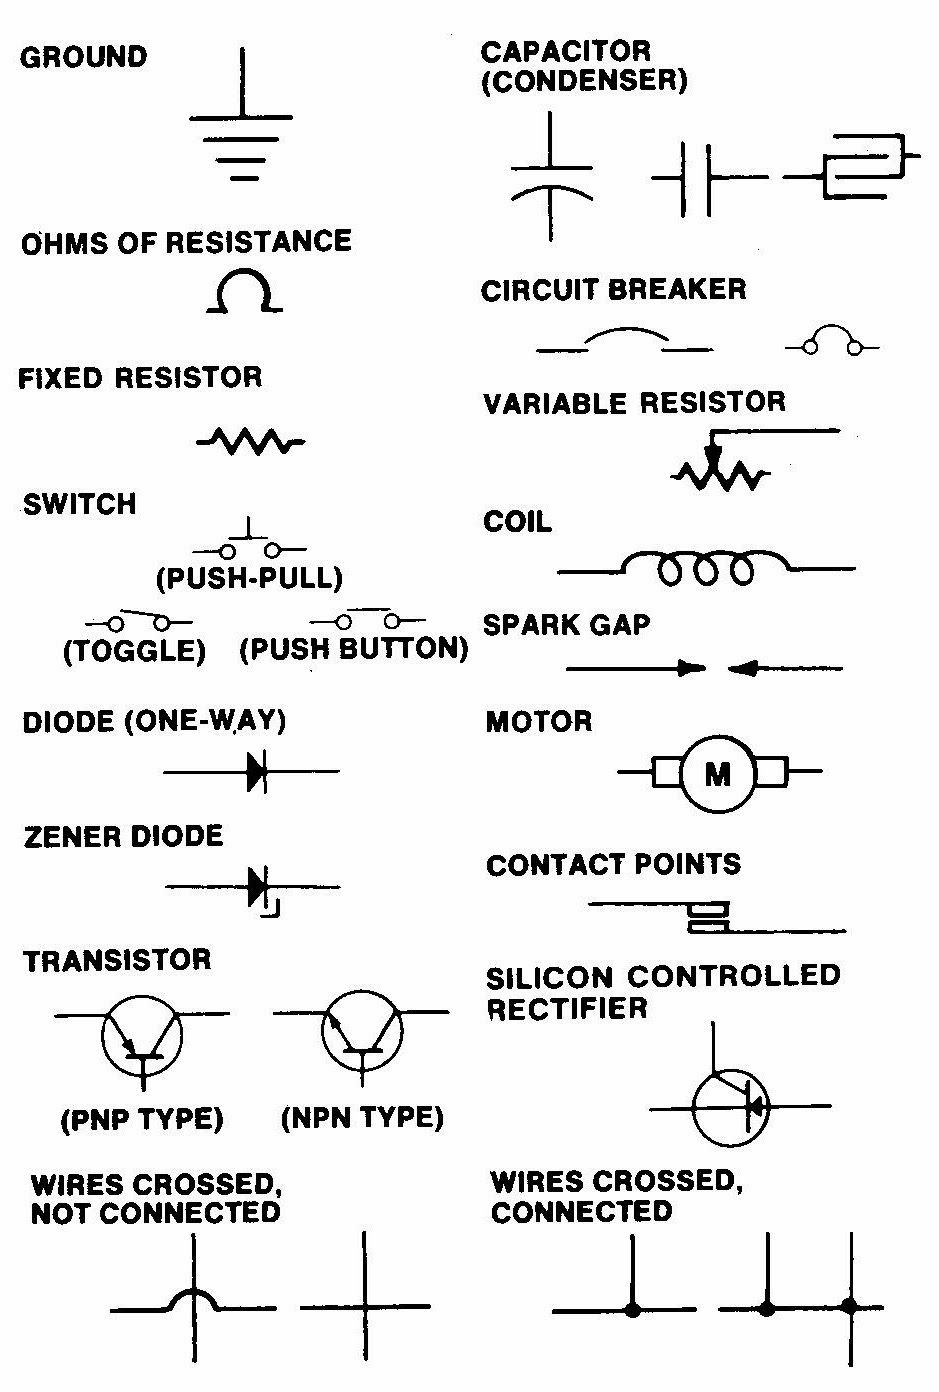 Wiring Diagram Symbols For Car Http Bookingritzcarlton Info Wiring Diagram Symbols For Ca Electrical Symbols Electrical Wiring Diagram Automotive Electrical